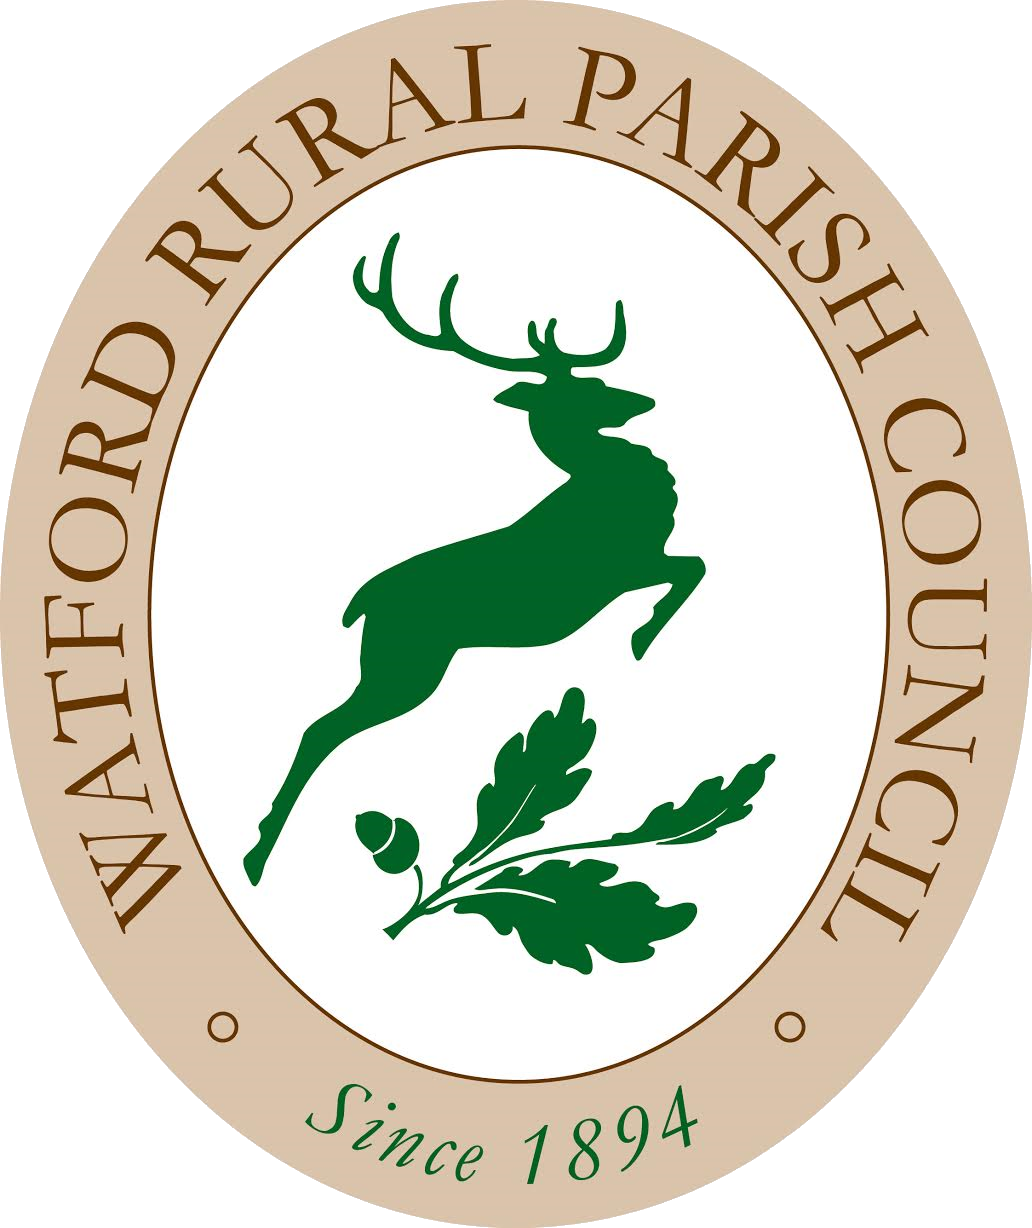 Watford Rural Parish Council